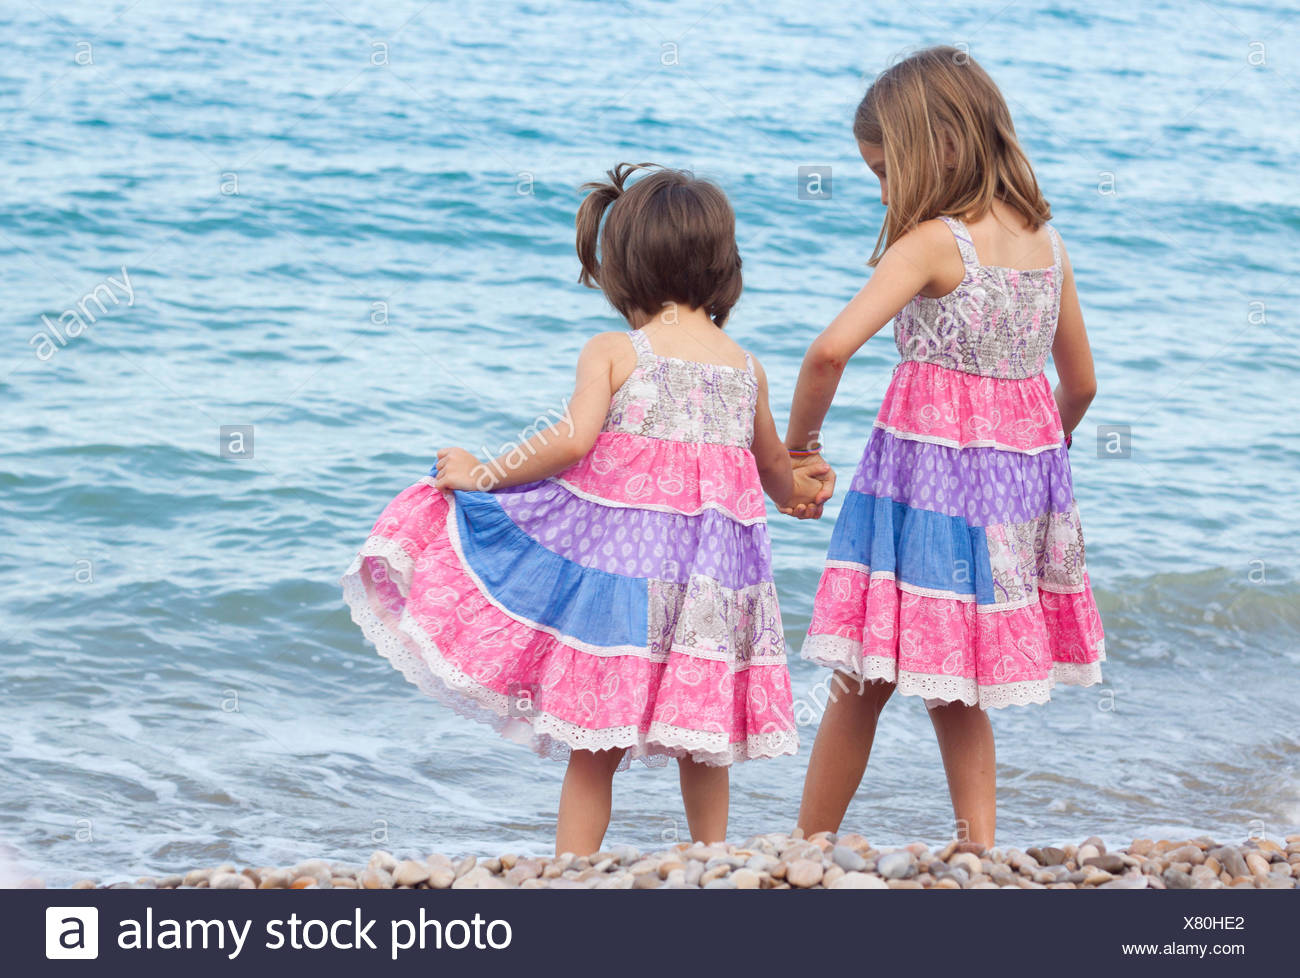 Two sisters standing on beach holding hands - Stock Image